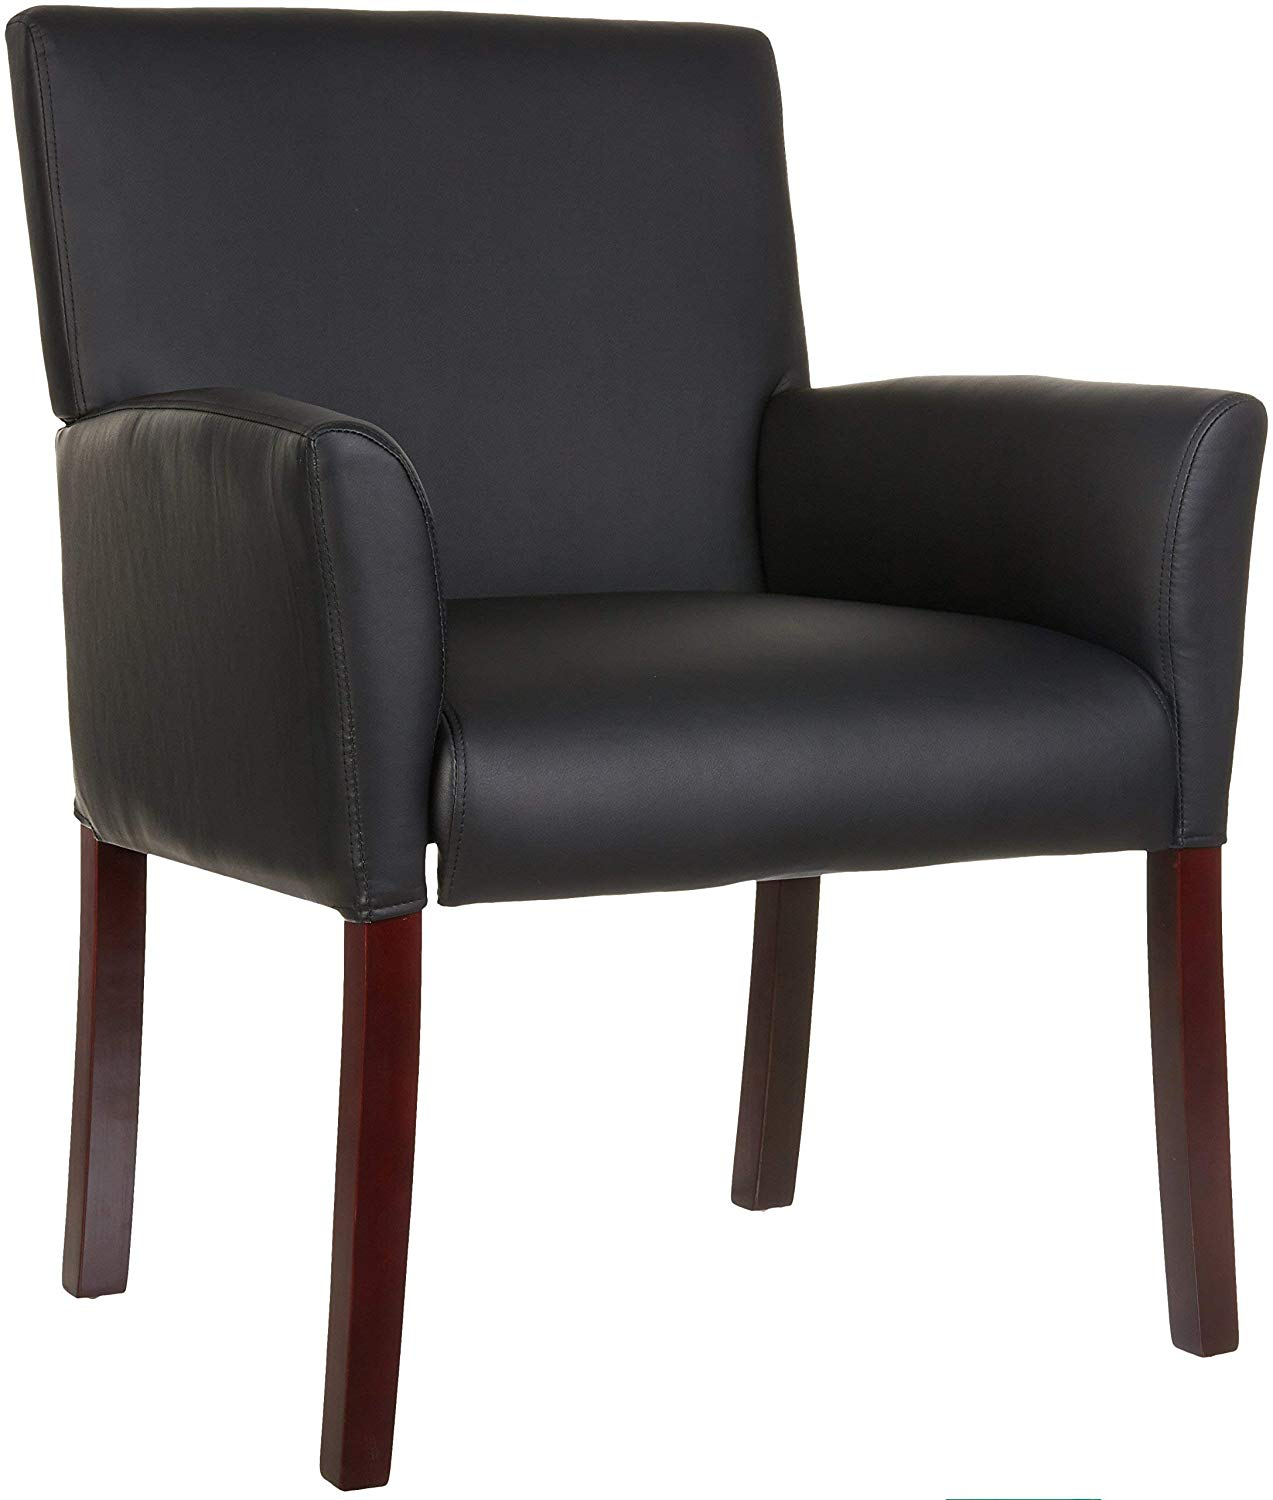 Classic Reception Office Chair with Mahogany Wood Finish Legs - Black